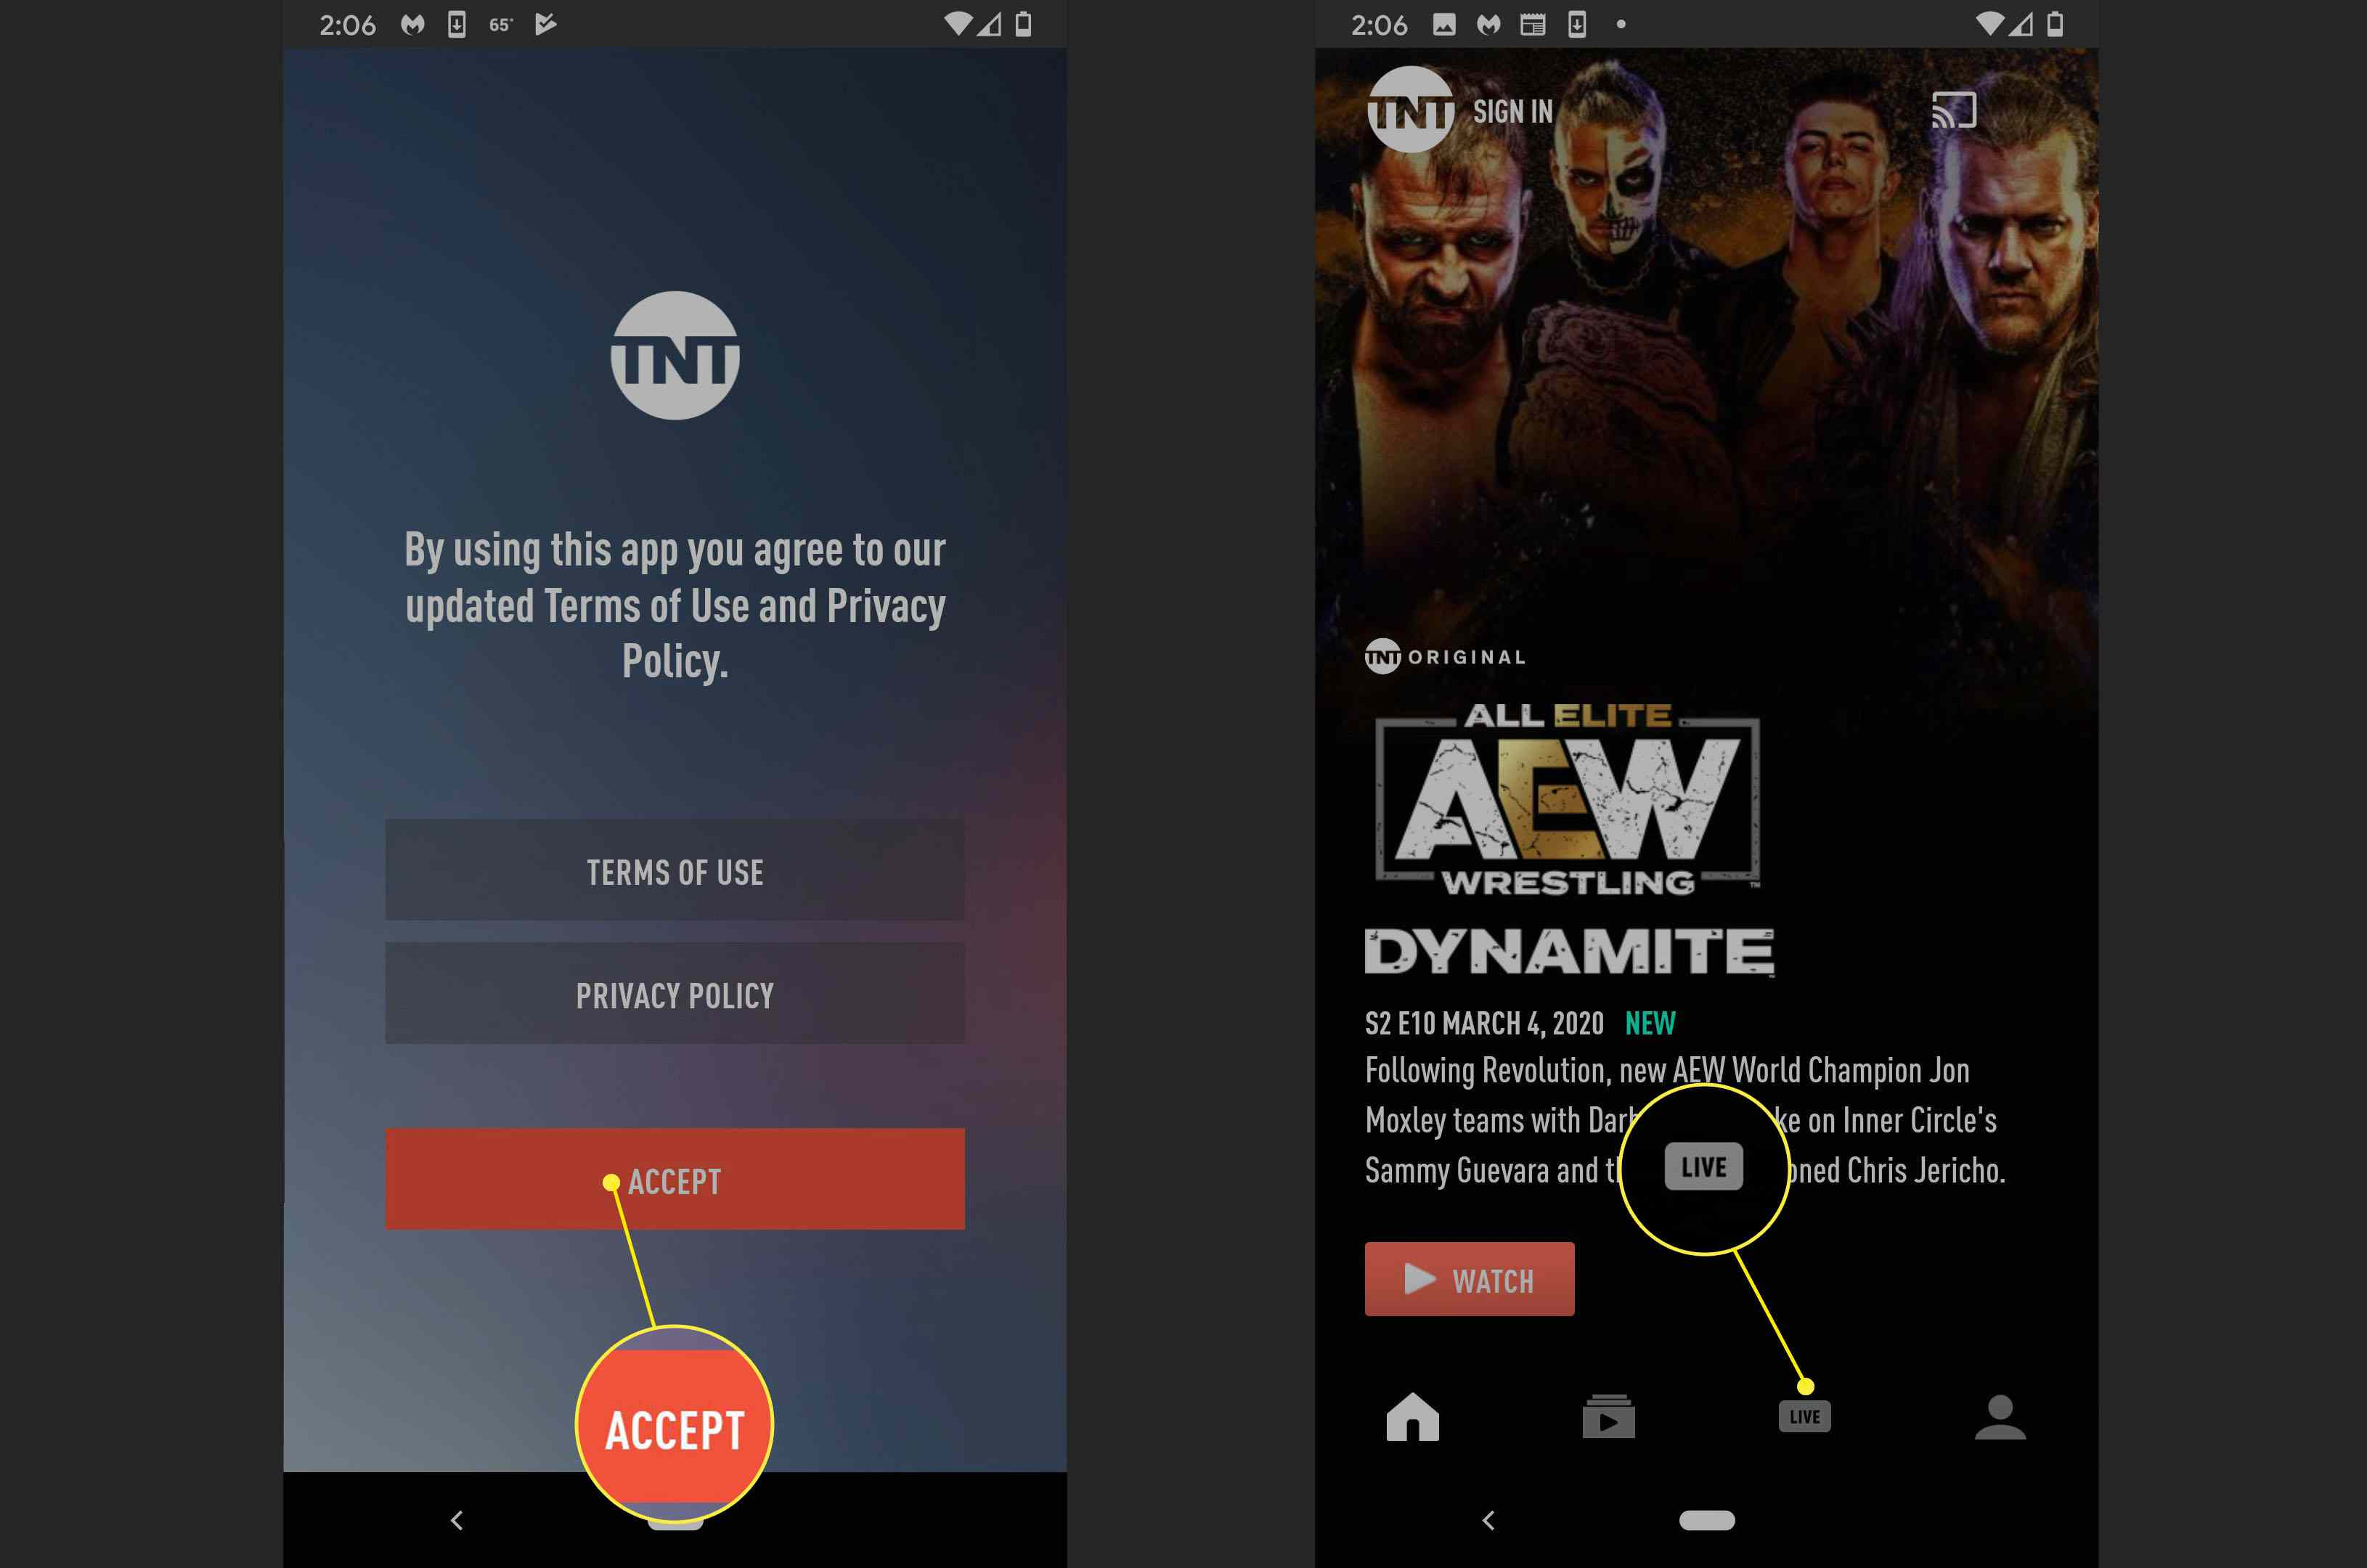 The location of the LIVE option on the TNT streaming app.